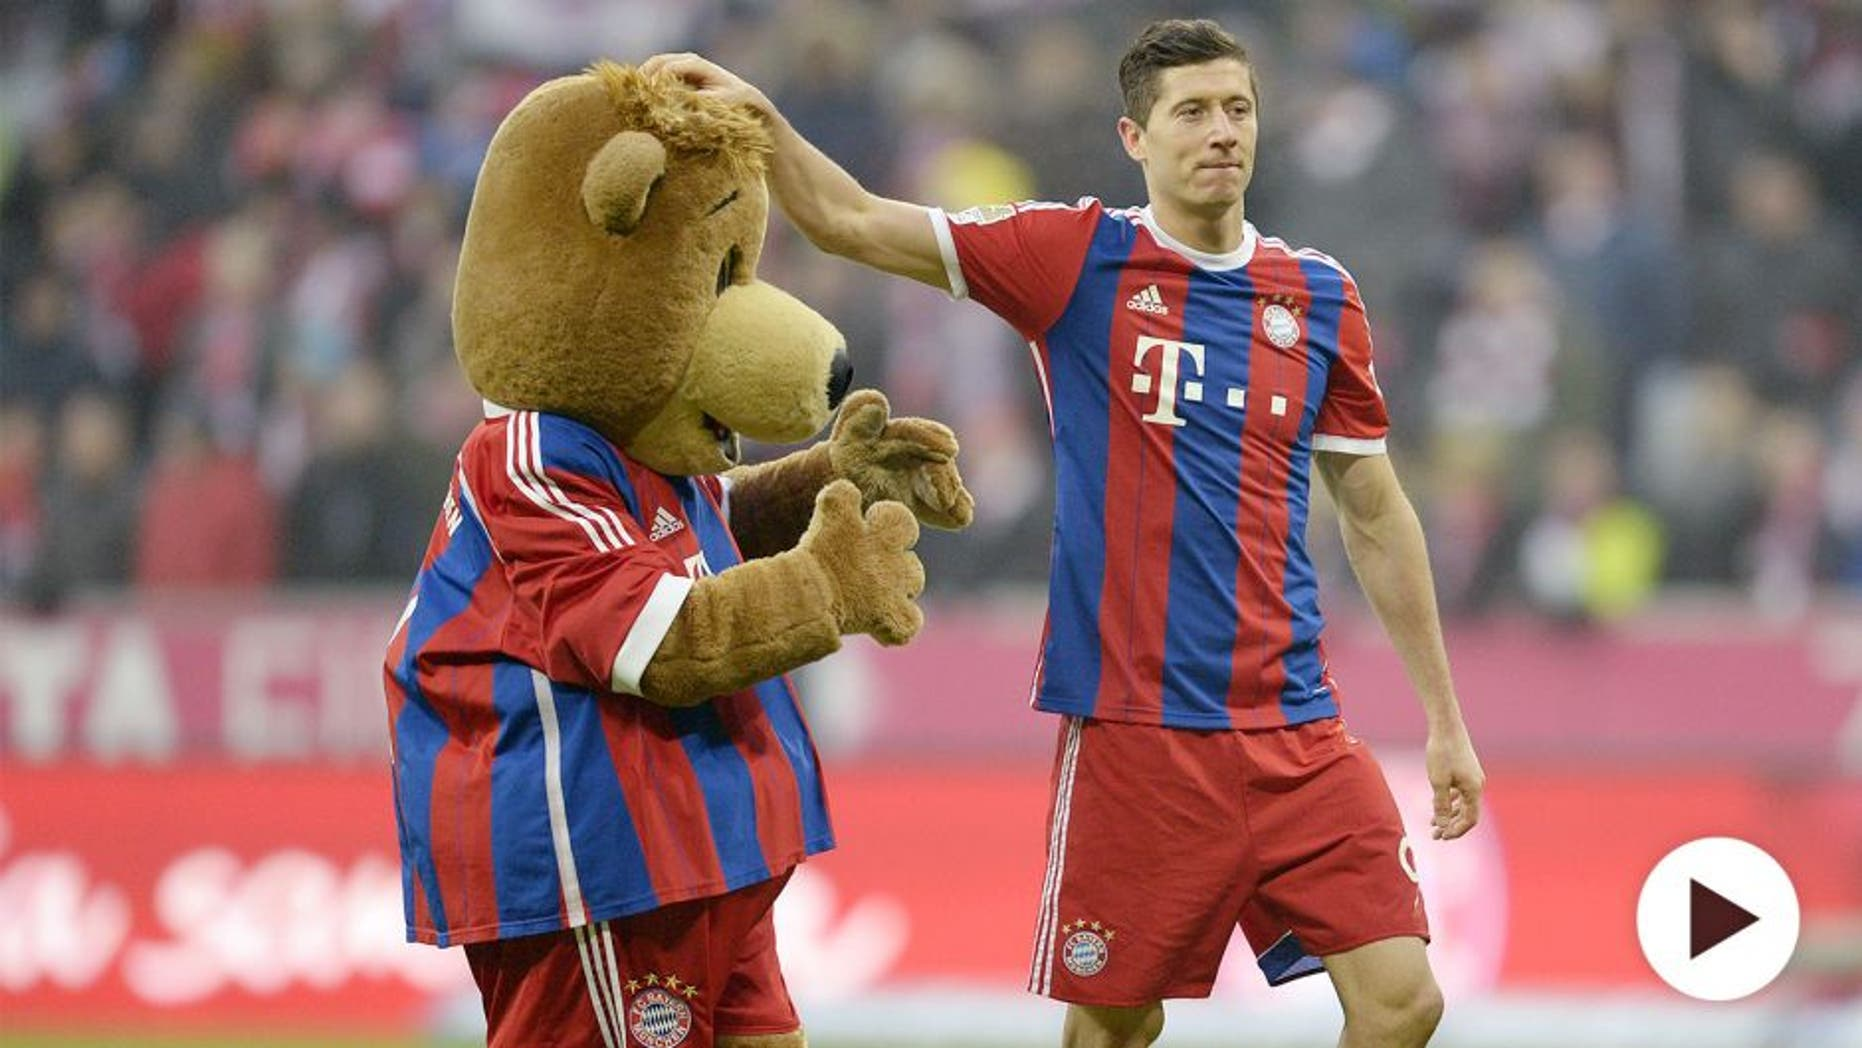 Bayern Munich's Polish striker Robert Lewandowski plays with the maskot after the German first division Bundesliga football match FC Bayern Munich vs Hamburger SV at the Allianz Arena in Munich, southern Germany, on February 14, 2015. AFP PHOTO / CHRISTOF STACHE RESTRICTIONS - DFL RULES TO LIMIT THE ONLINE USAGE DURING MATCH TIME TO 15 PICTURES PER MATCH. FOR FURTHER QUERIES PLEASE CONTACT DFL DIRECTLY AT + 49 69 650050 (Photo credit should read CHRISTOF STACHE/AFP/Getty Images)